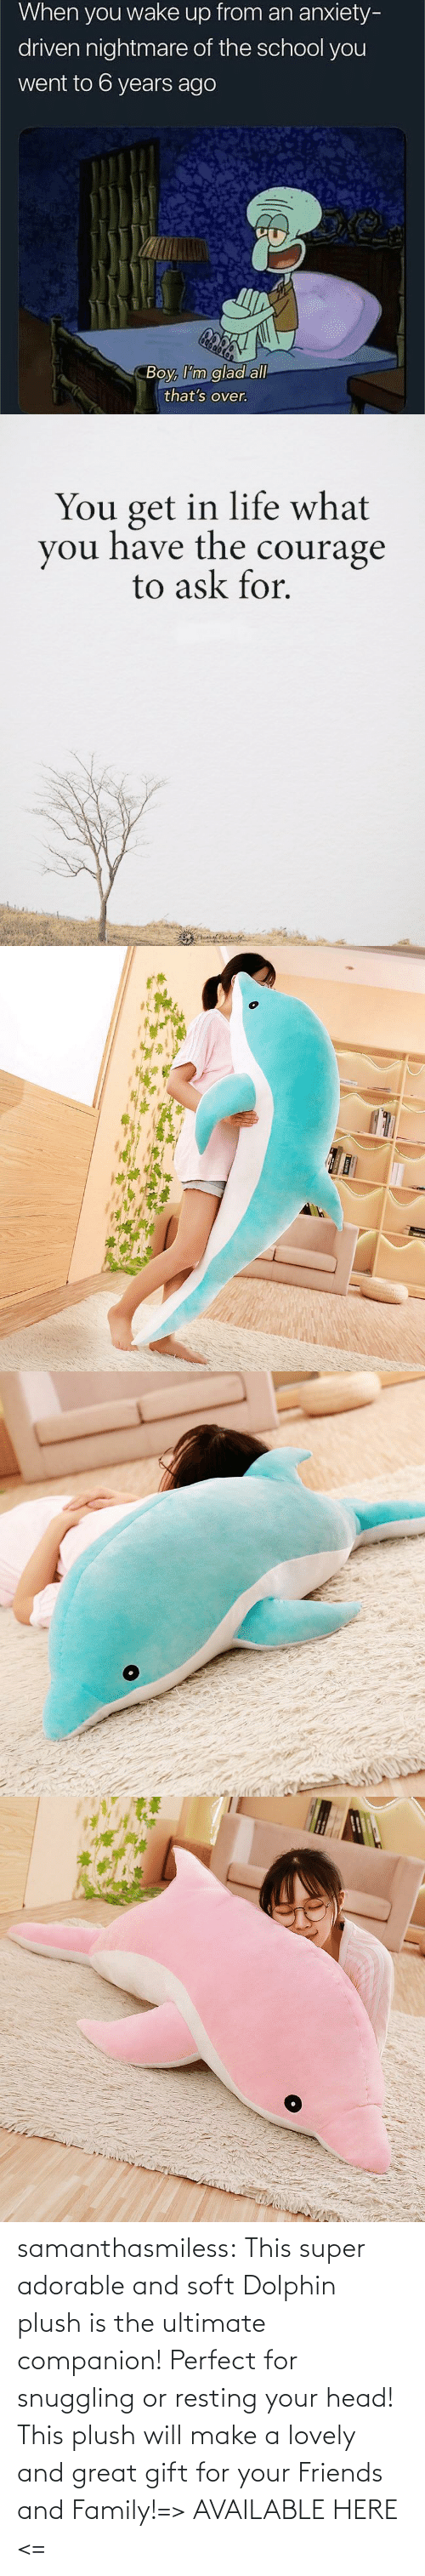 Dolphin: samanthasmiless:  This super adorable and soft Dolphin plush is the ultimate companion! Perfect for snuggling or resting your head! This plush will make a lovely and great gift for your Friends and Family!=> AVAILABLE HERE <=